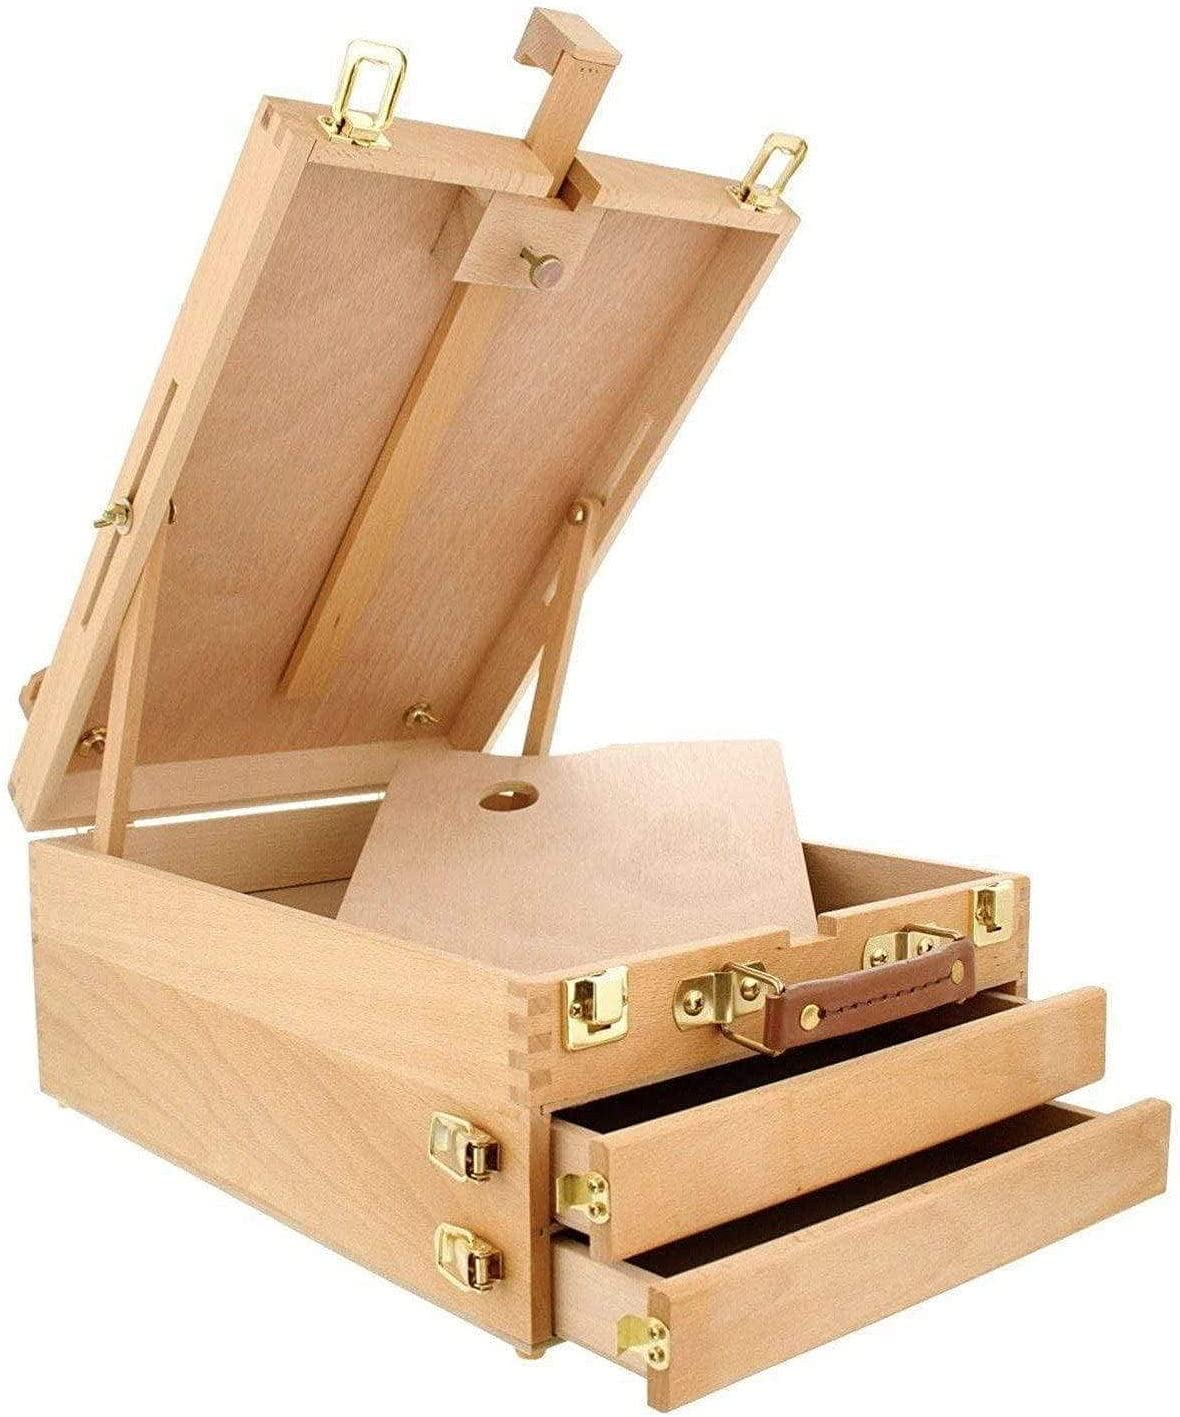 KINGART Beechwood Limited time Max 85% OFF trial price Extra Large 2-Drawer Tabletop Adjustable